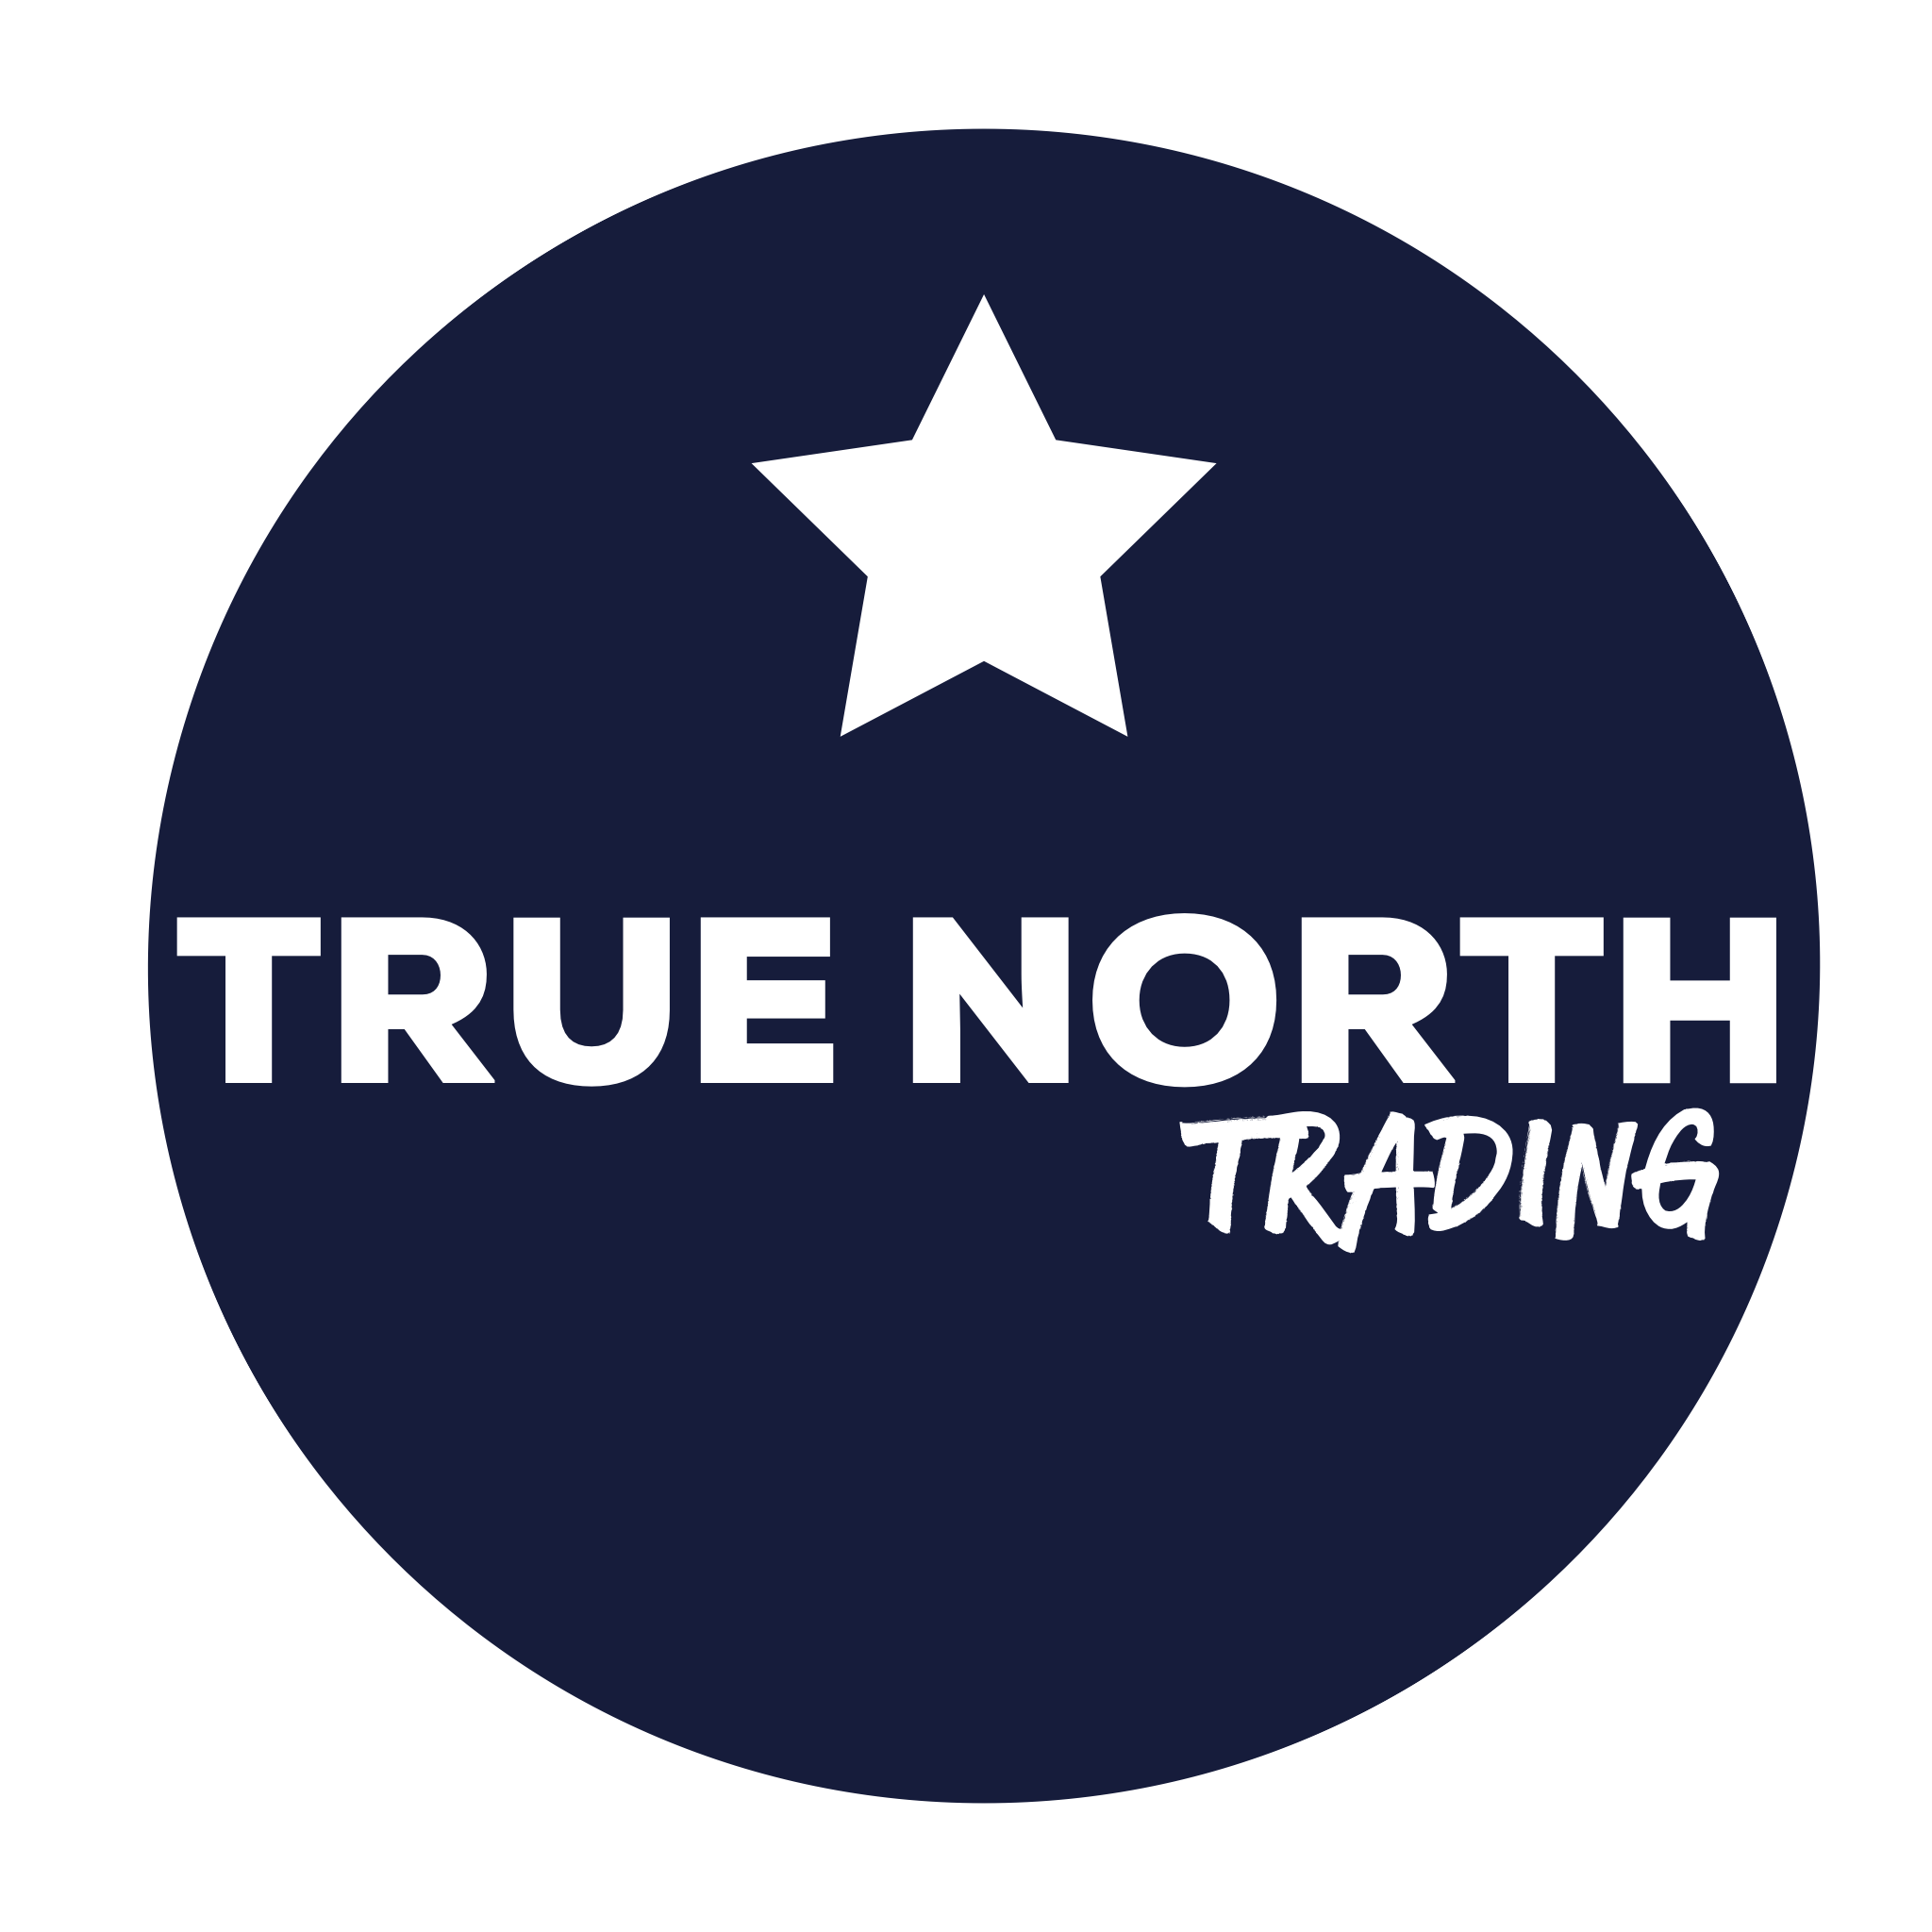 True North Trading, LLC